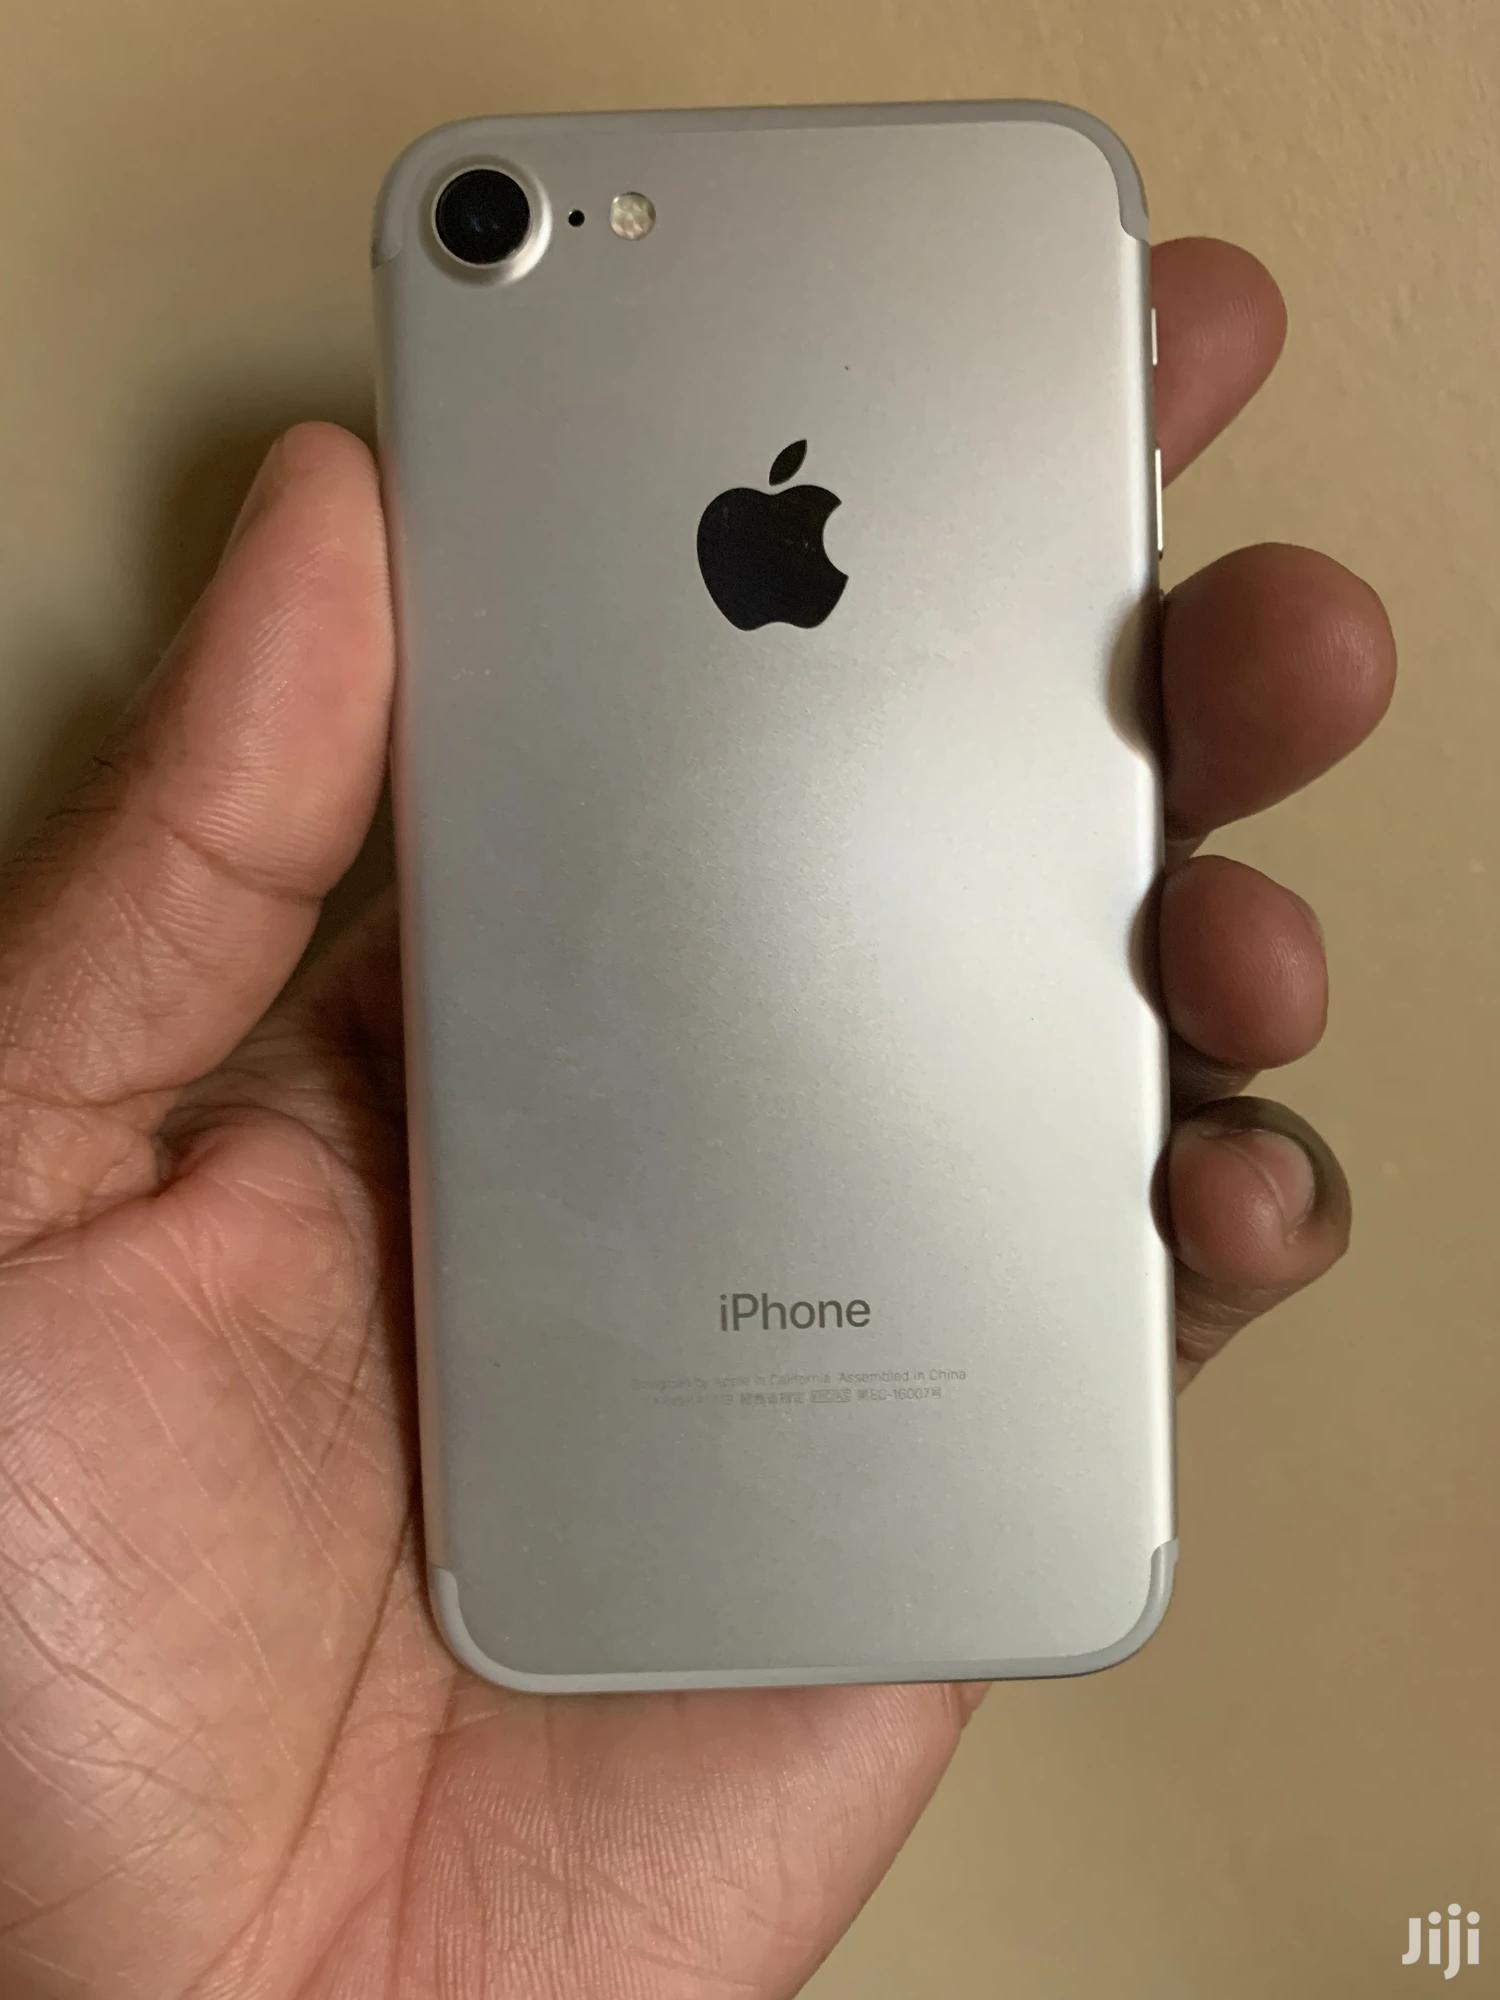 Apple iPhone 7 32 GB White | Mobile Phones for sale in Kampala, Central Region, Uganda